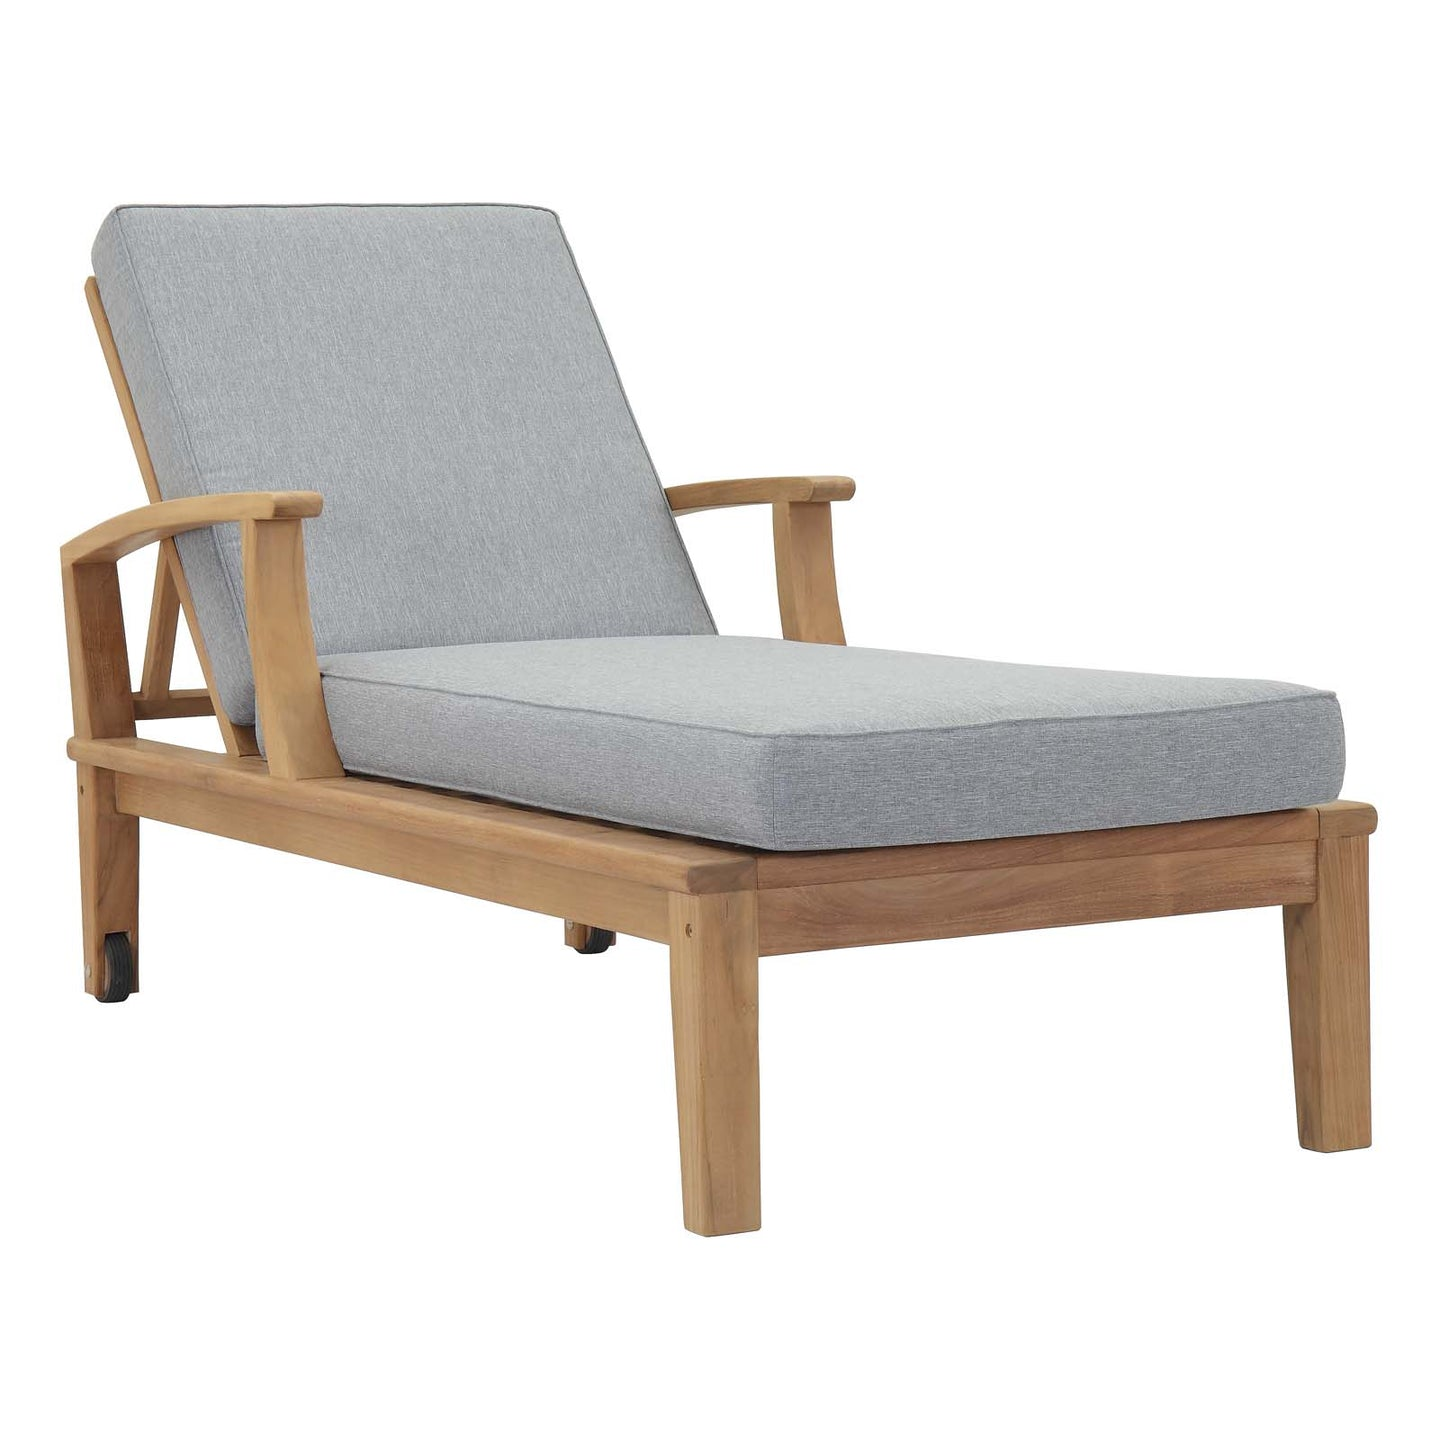 Modway Furniture Modern Marina Outdoor Patio Teak Single Chaise in Natural White EEI-1151-NAT-WHI-SET - Minimal and Modern